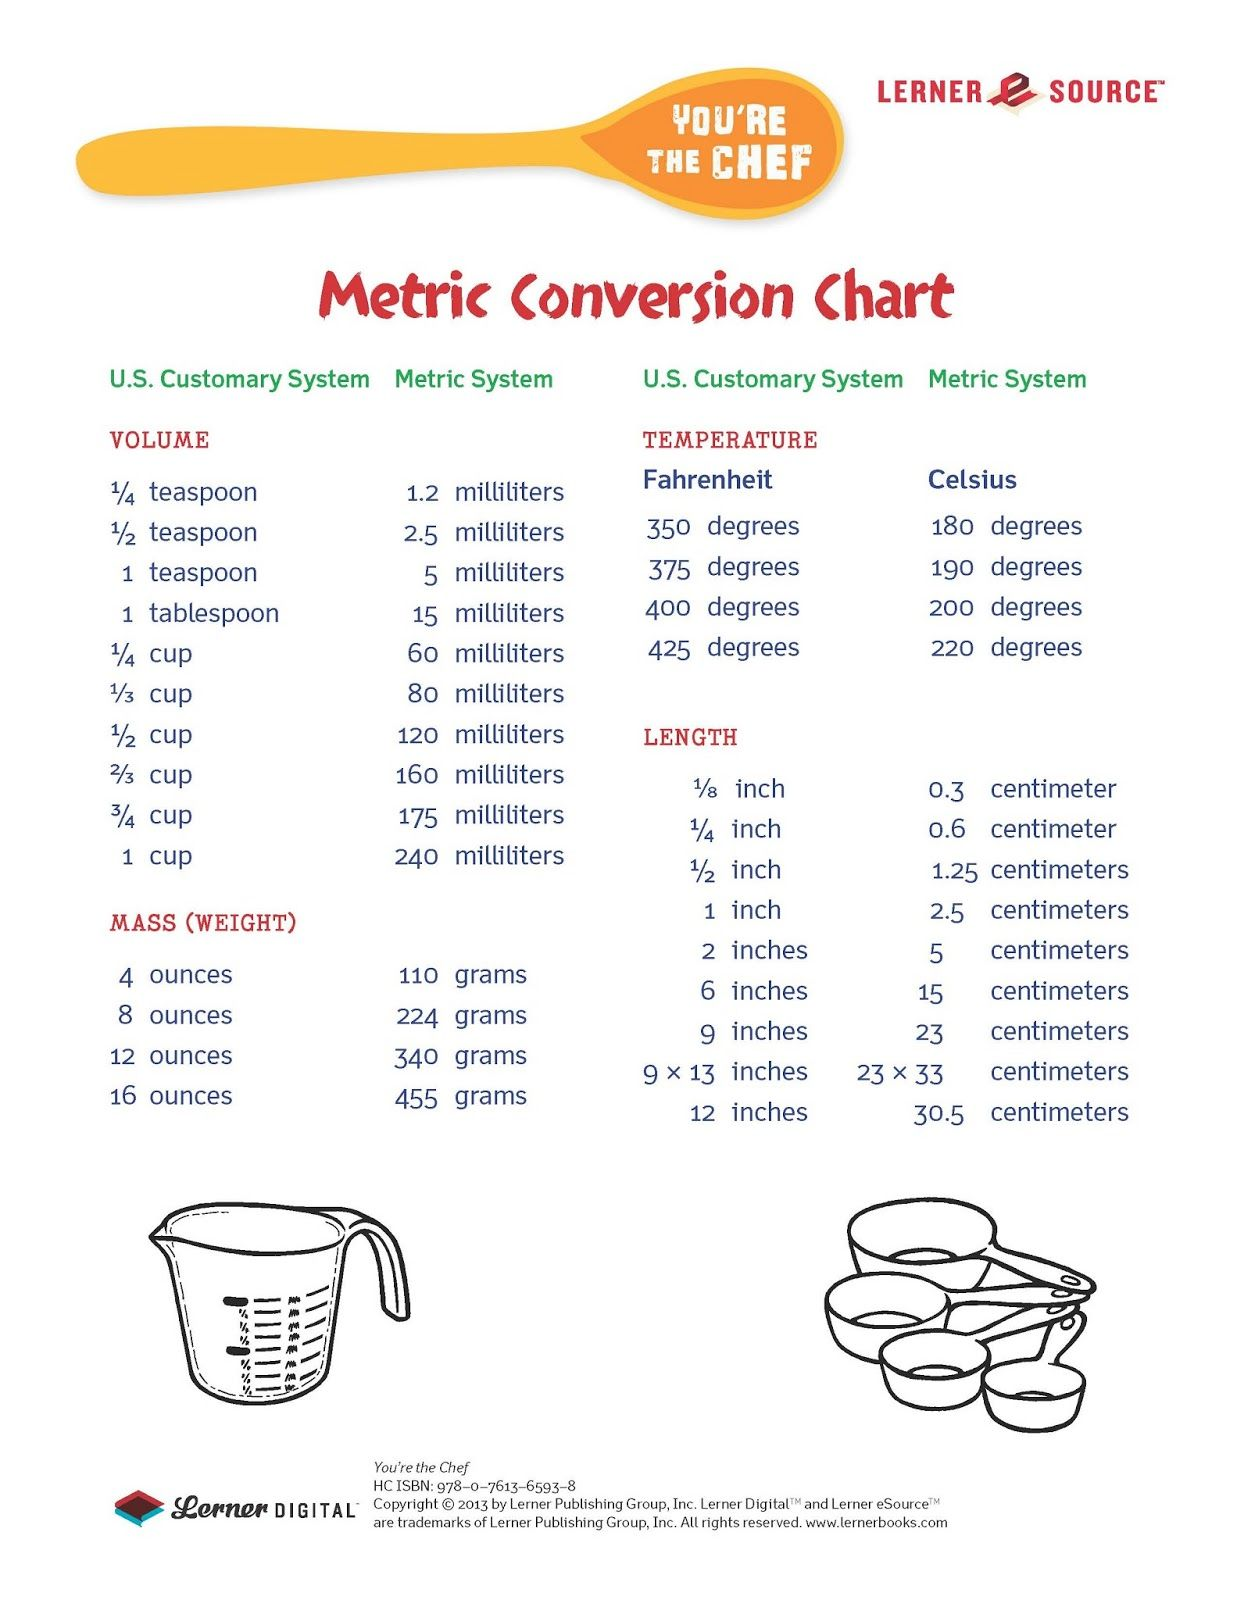 Metric cooking conversion table yahoo search results conversion chart for cooking measurements american versus english forumfinder Image collections